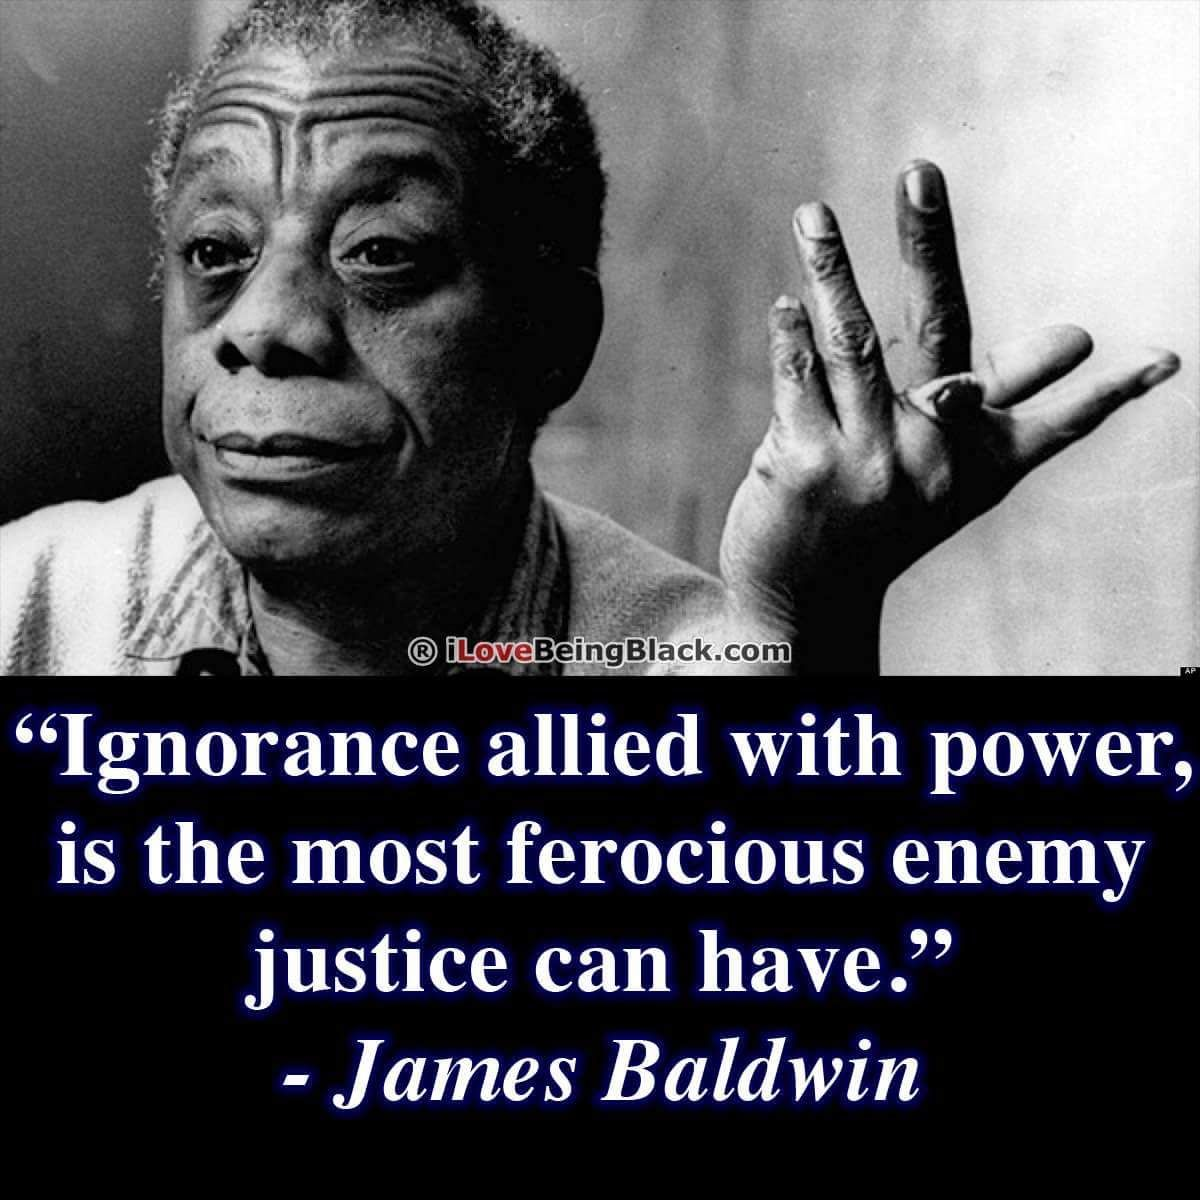 james baldwin quote civil and human rights james james baldwin quote